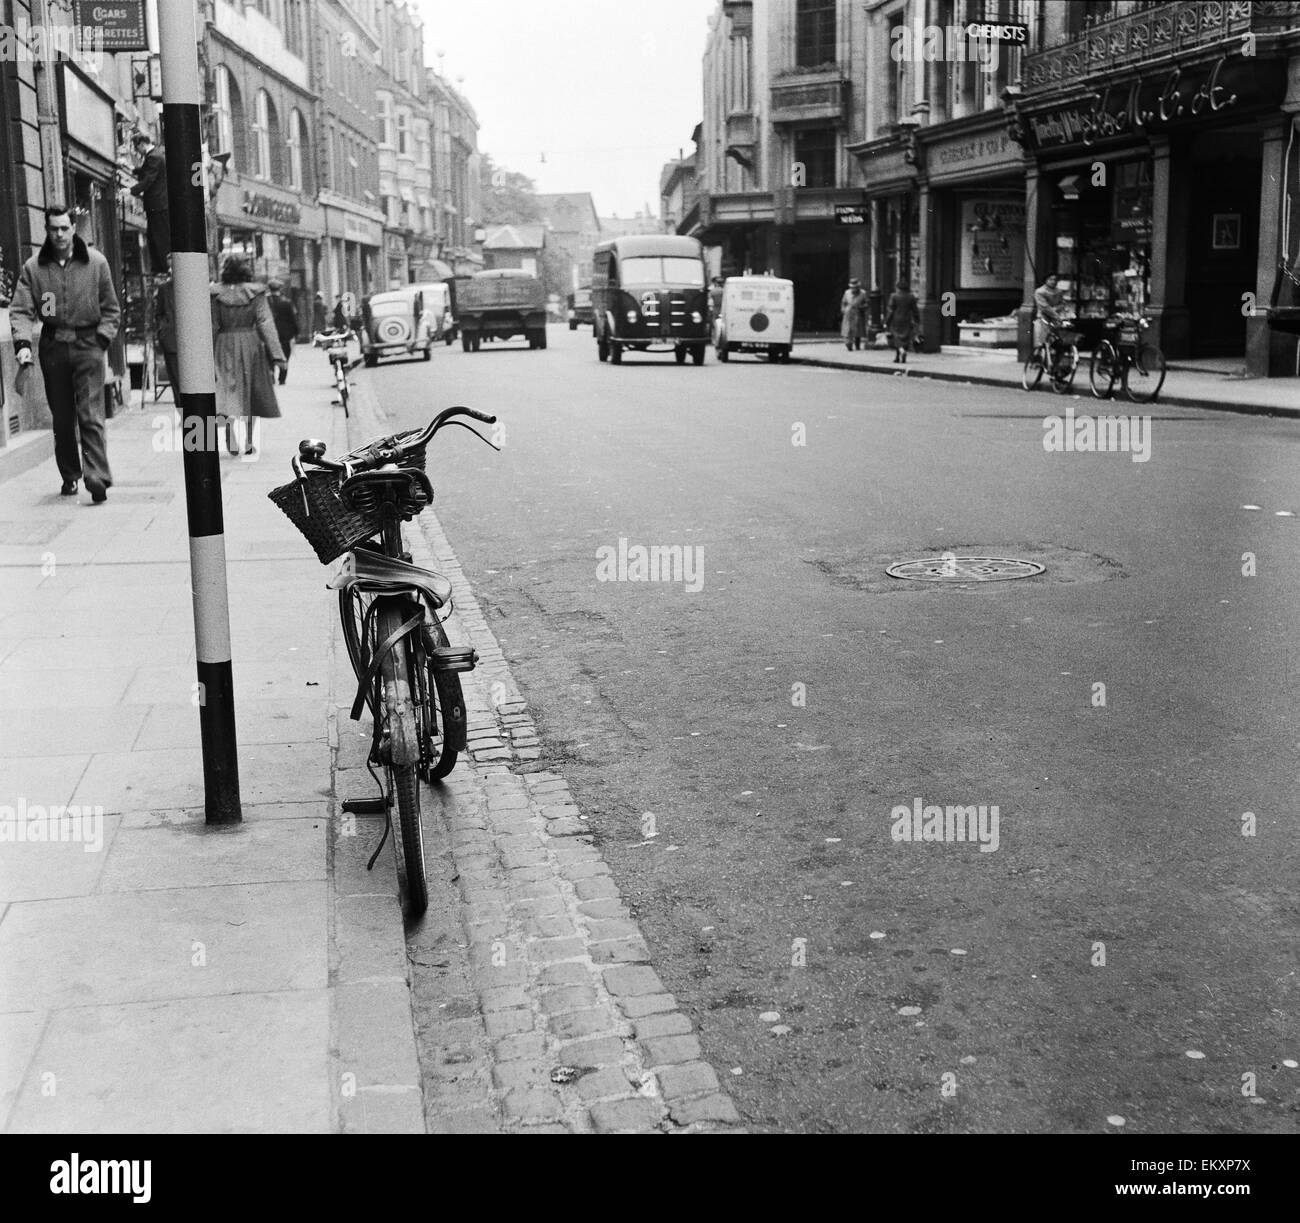 Street scene in Oxford town centre, showing a bicycle parked up against the kerb. 12th October 1952. - Stock Image